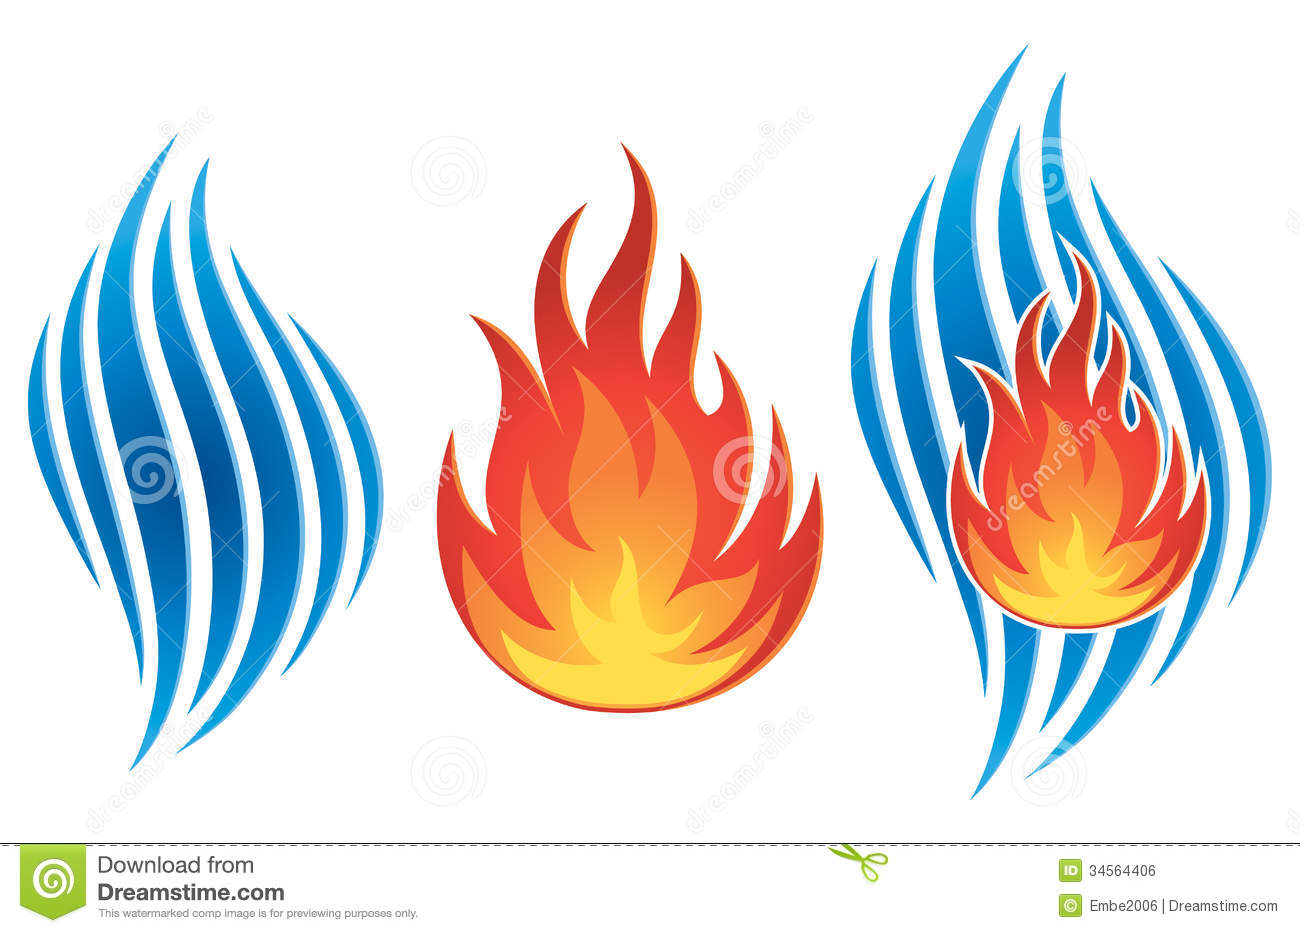 Water fire clipart png free download Water Fire Logo Royalty Free | Clipart Panda - Free Clipart ... png free download